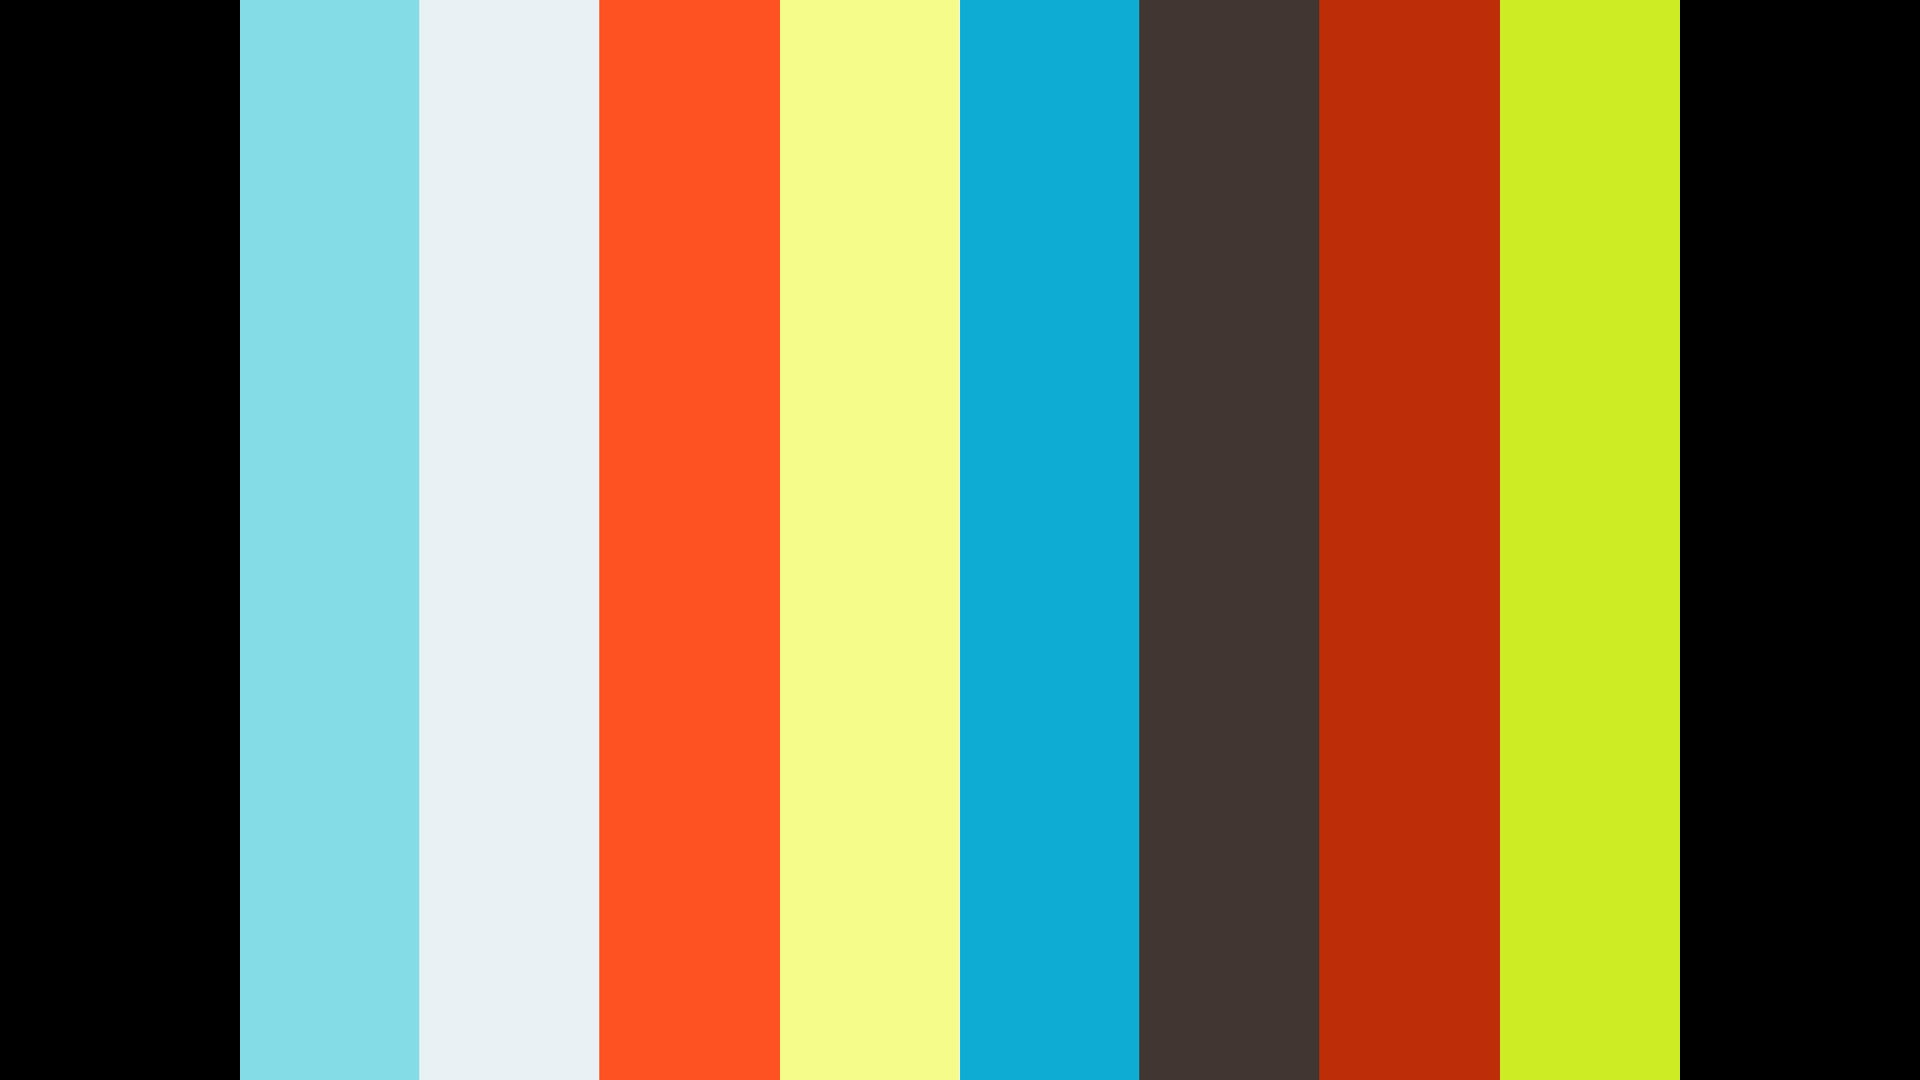 What else is distinctive about this book?